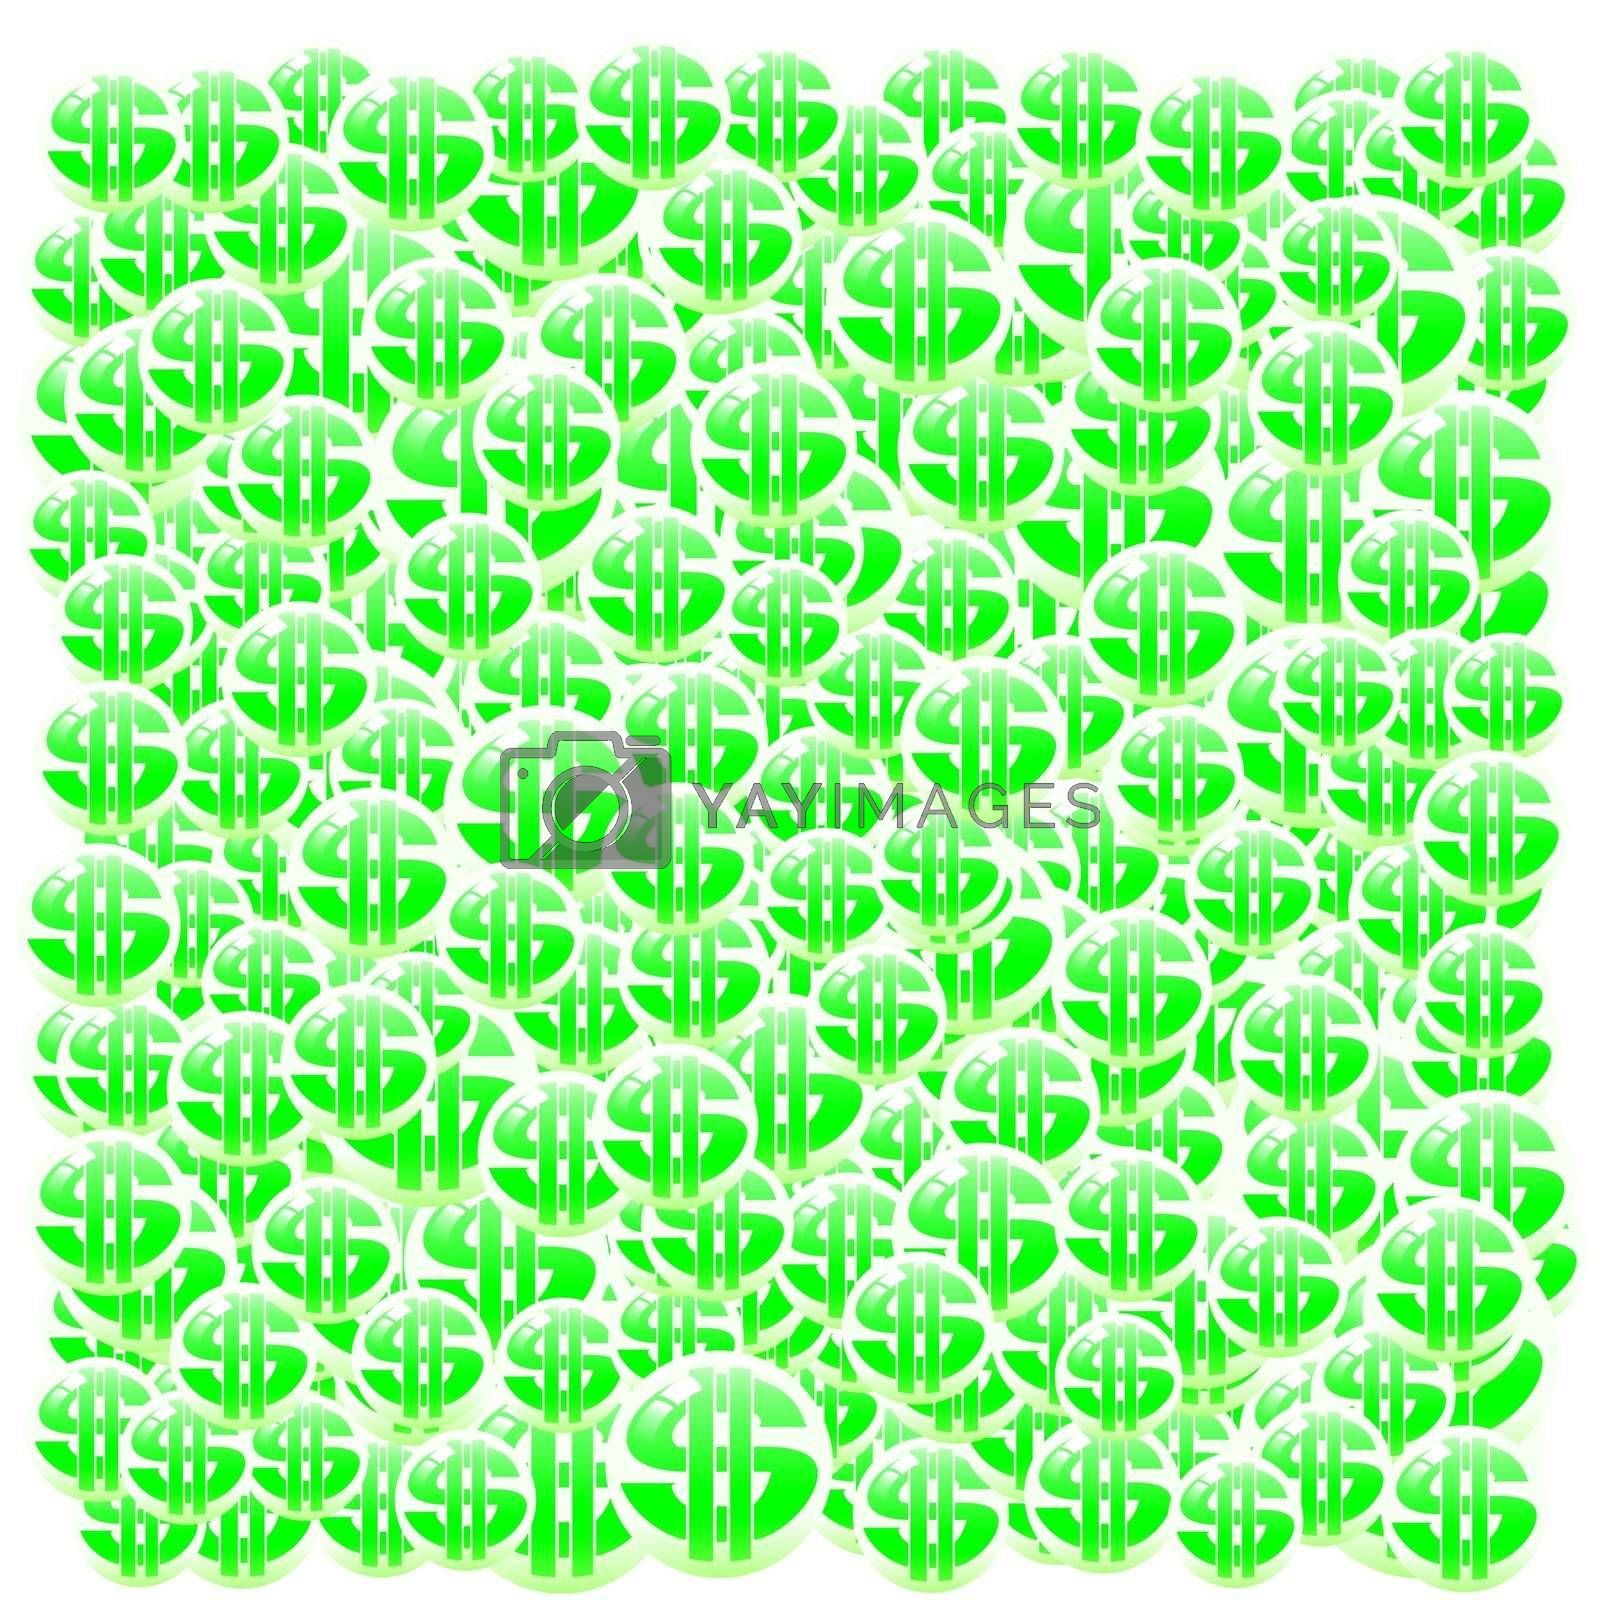 Lots of bubbles with dollar signs enclosed